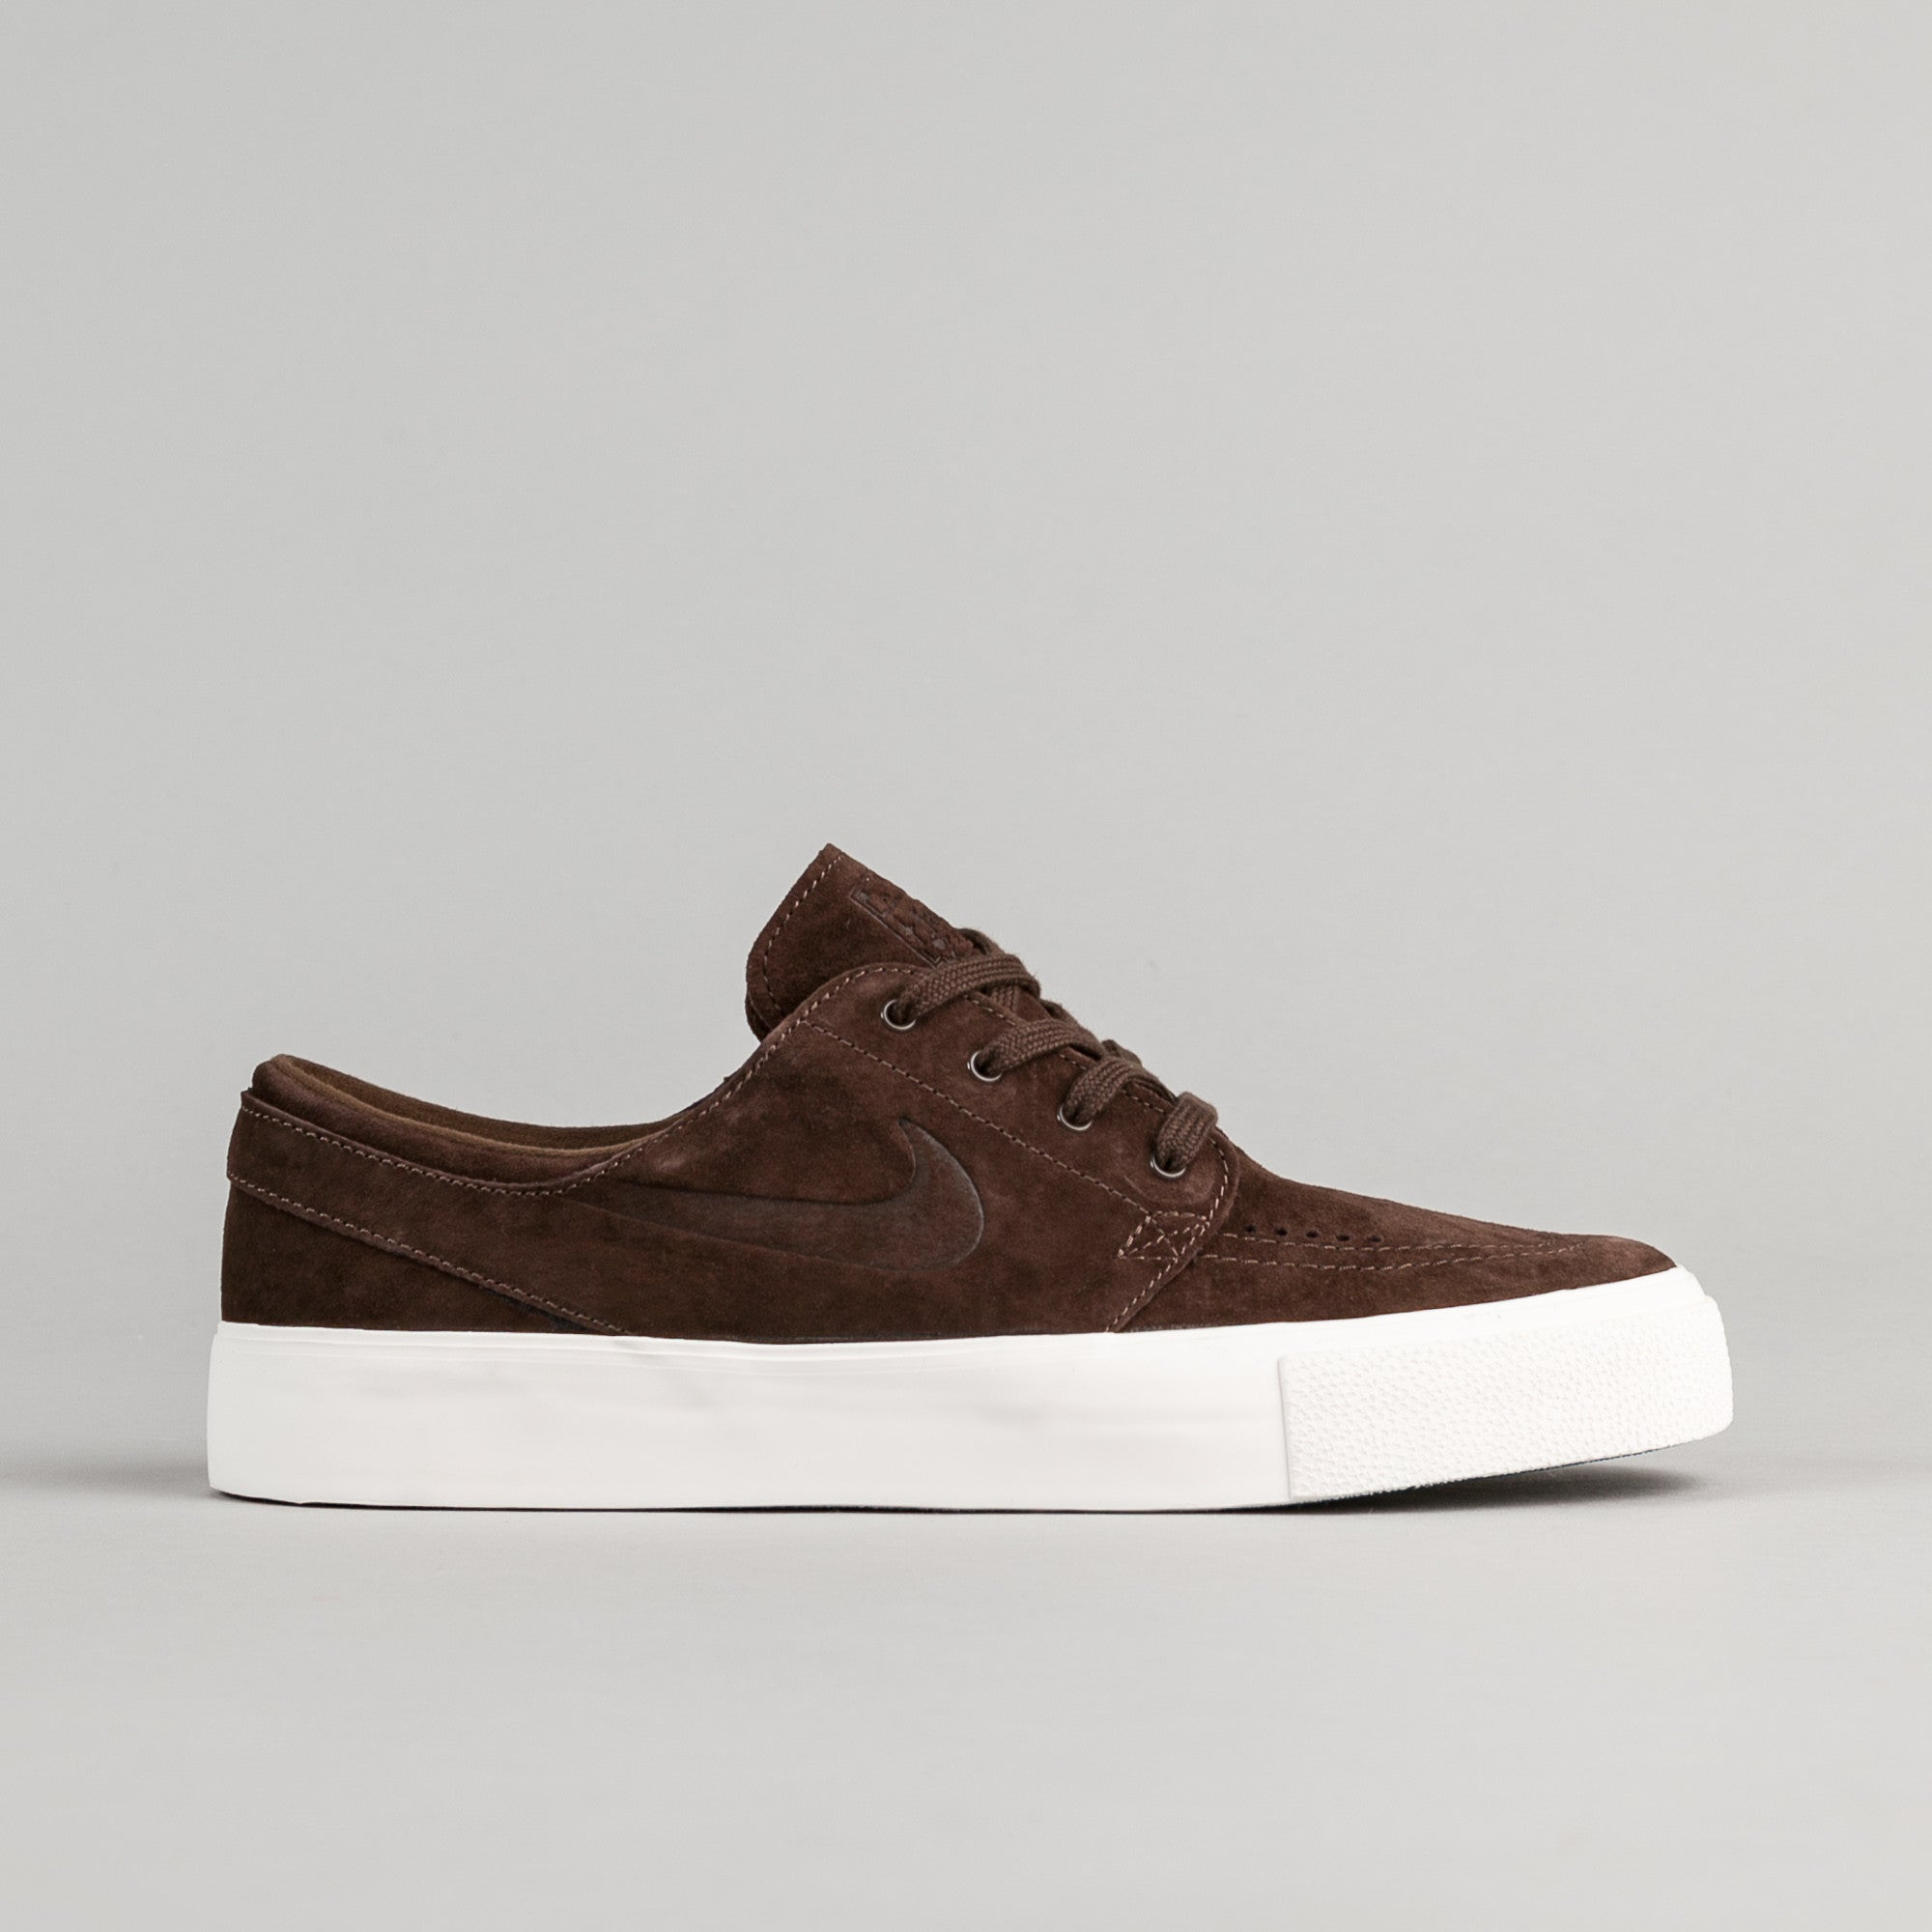 Nike SB Stefan Janoski Premium HT Shoes - Baroque Brown   Baroque Brown -  Ivory 8b1c2f6b45bd